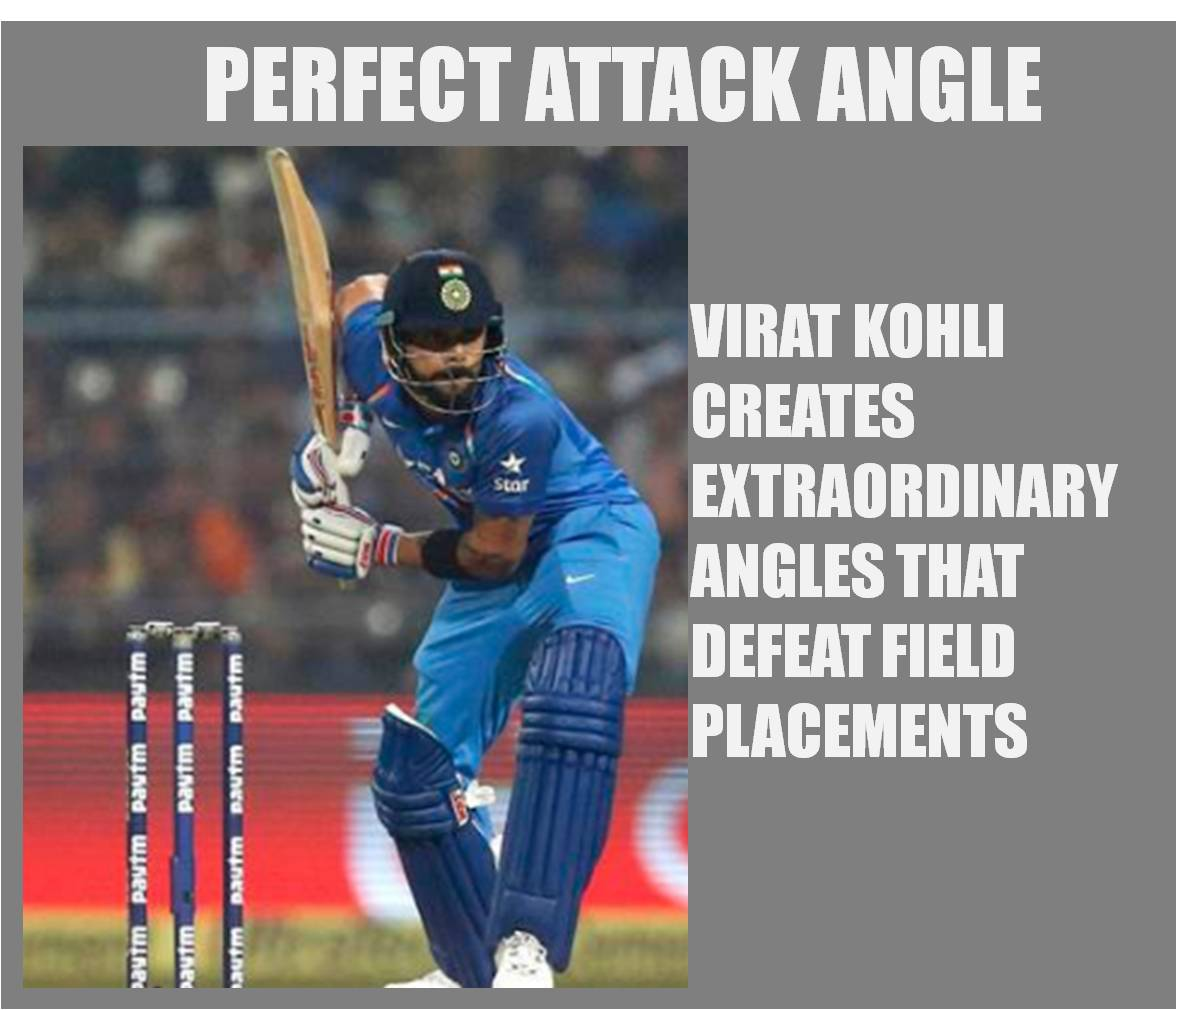 MRF_VIRAT_KHOLI_PLAYING_STYLE_PERFECT_ATTACK_ANGLE